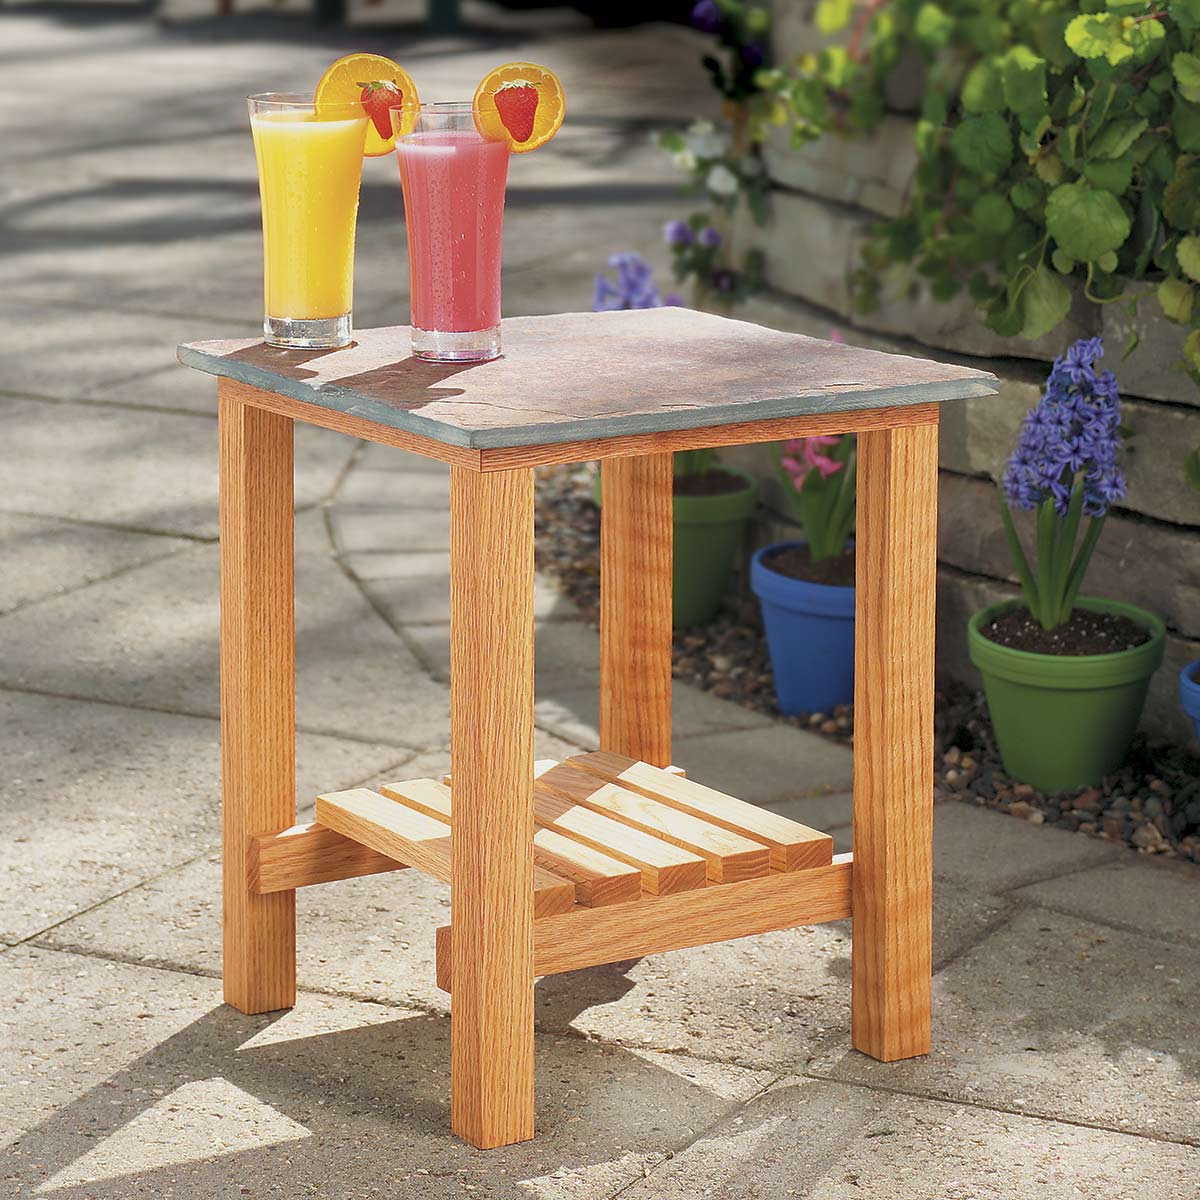 Patio Table: These 25 Woodworking Projects For The Garden will help you make some money.